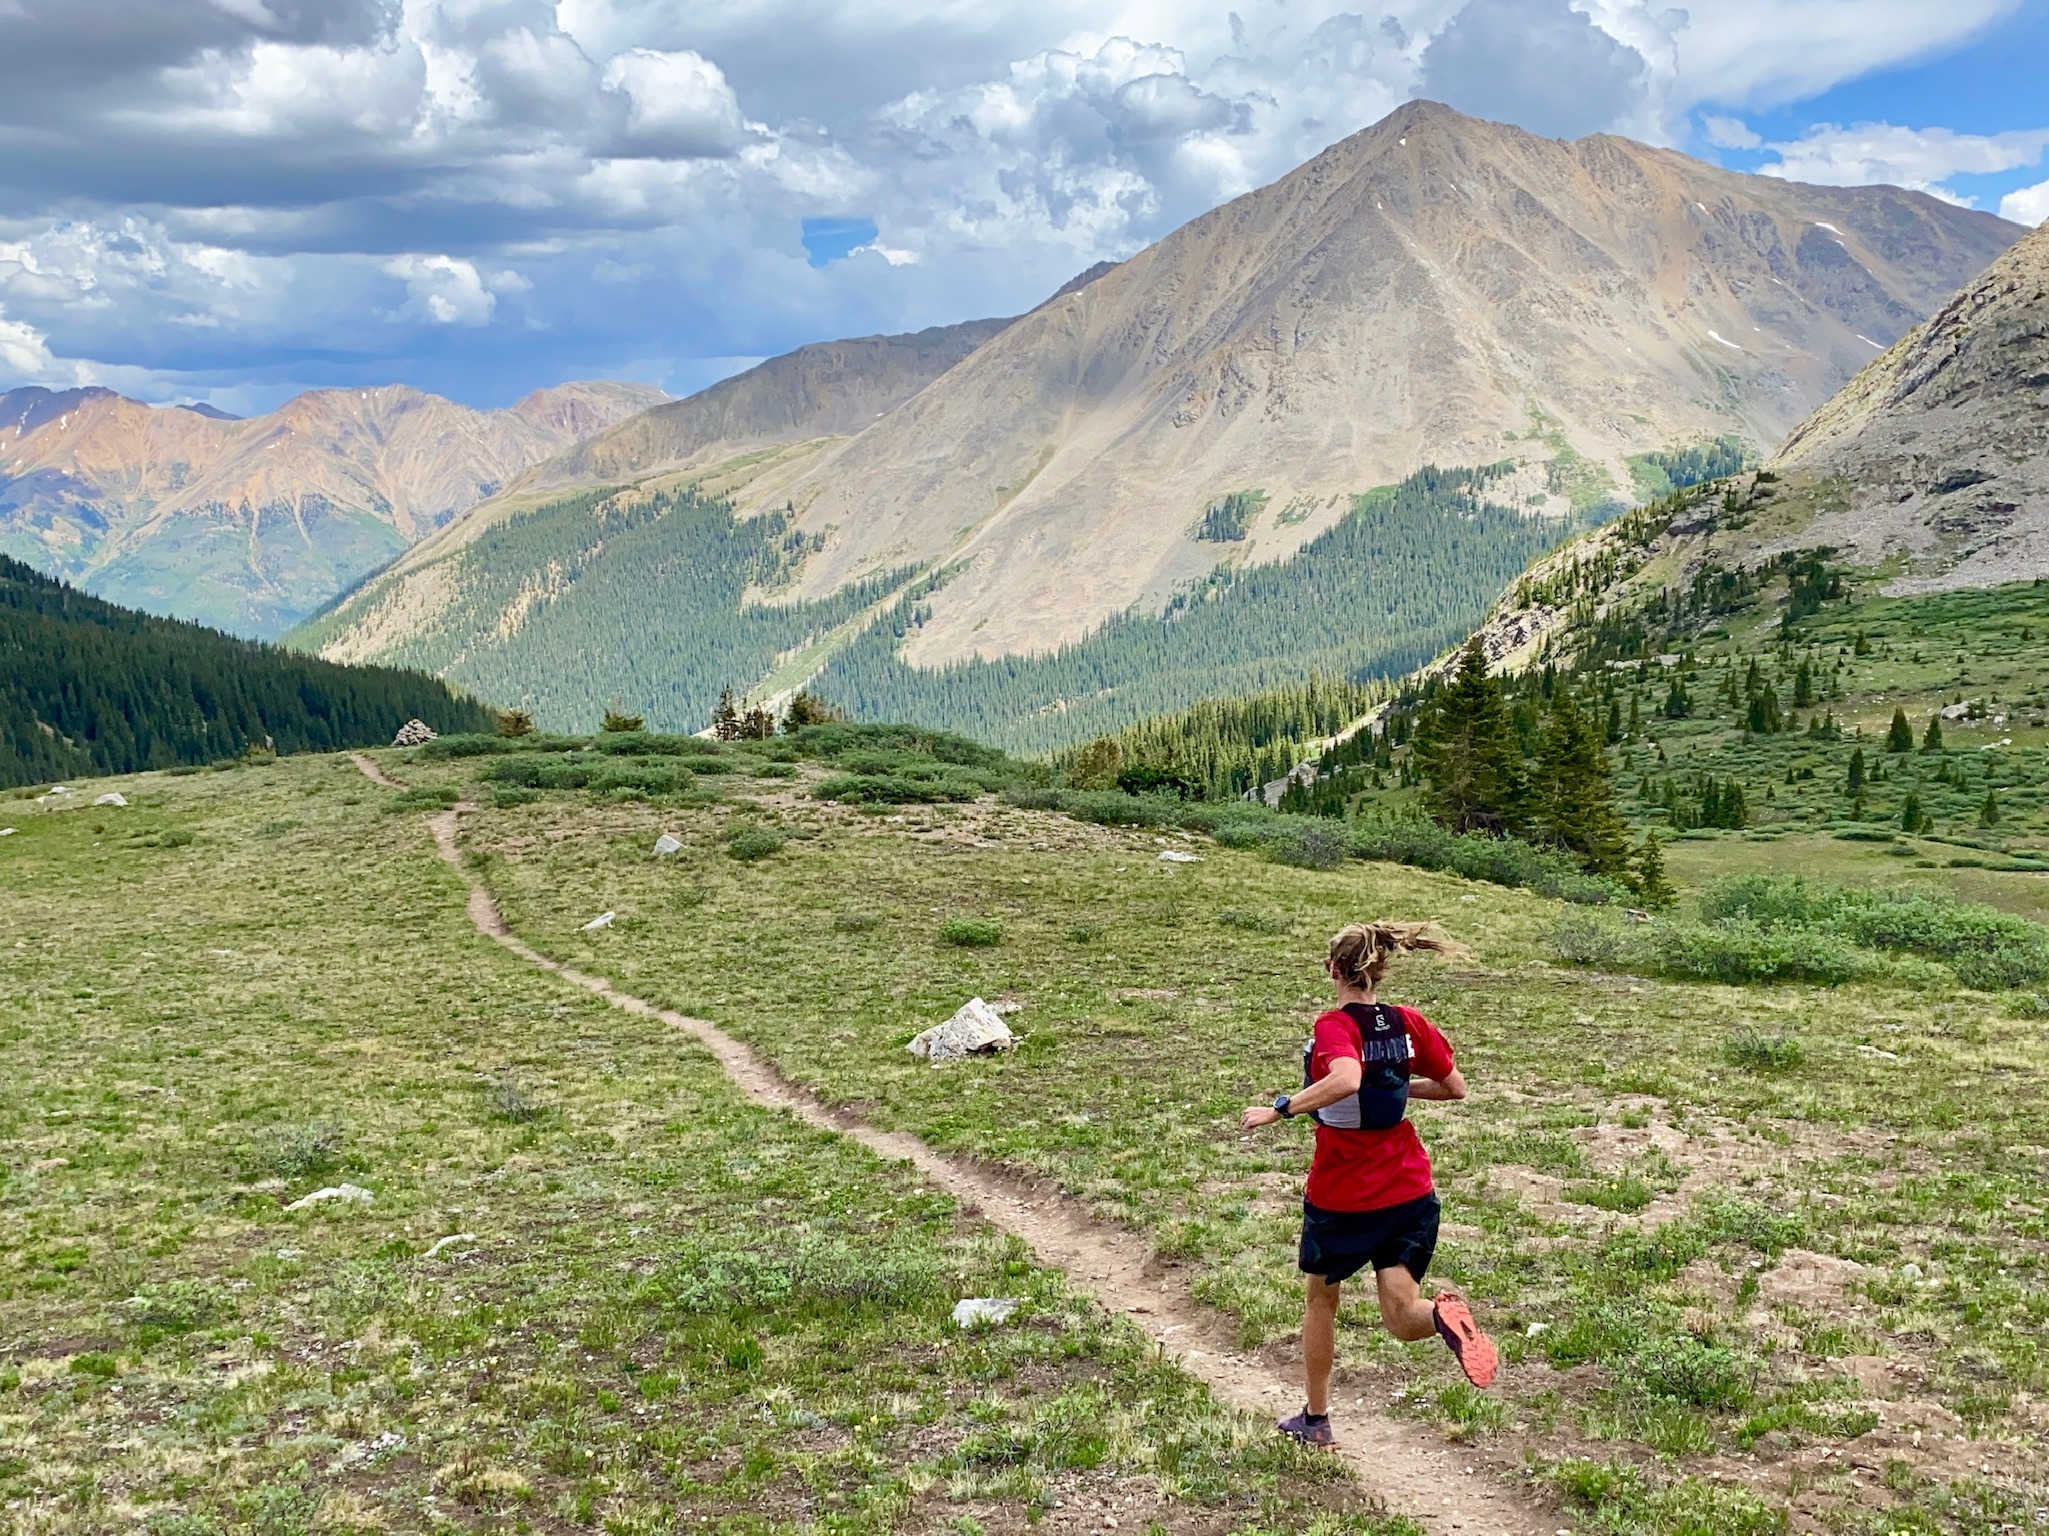 Superfeet Ambassador Courtney Dauwalter runs along a trail with an awe-inspiring view